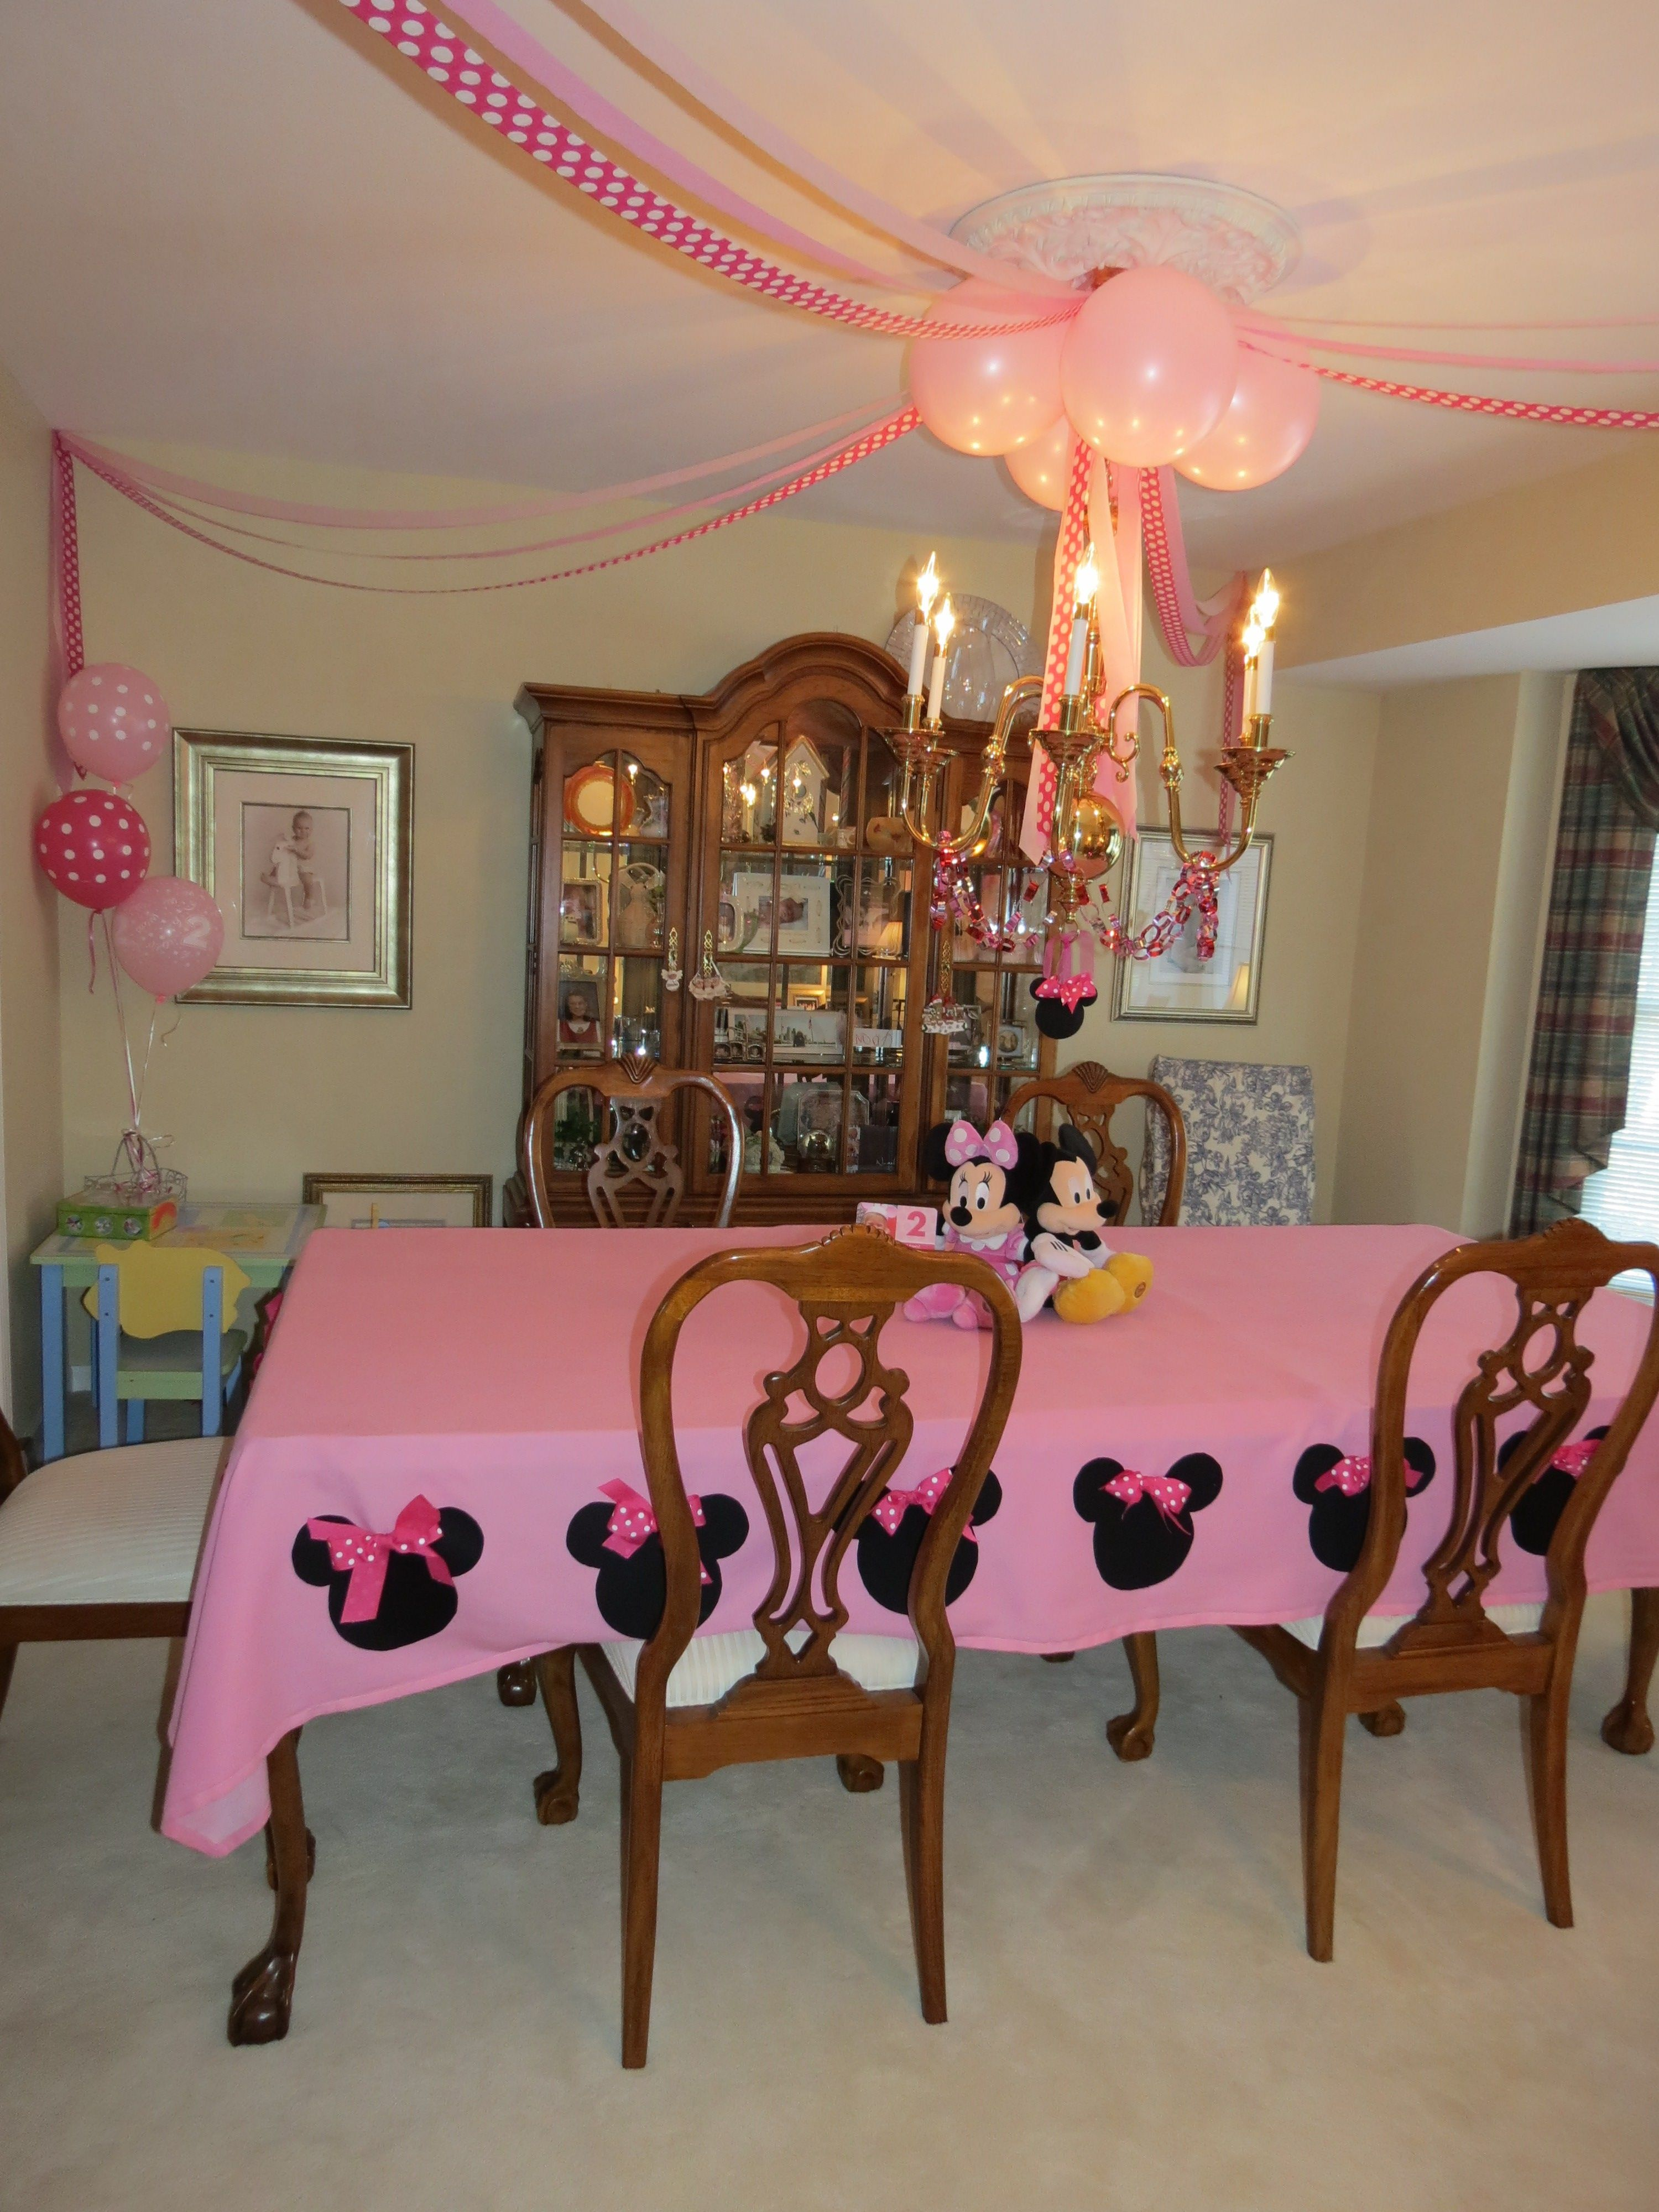 diyminnie mouse party ideas DIY Minnie Mouse Tablecloth Birthday